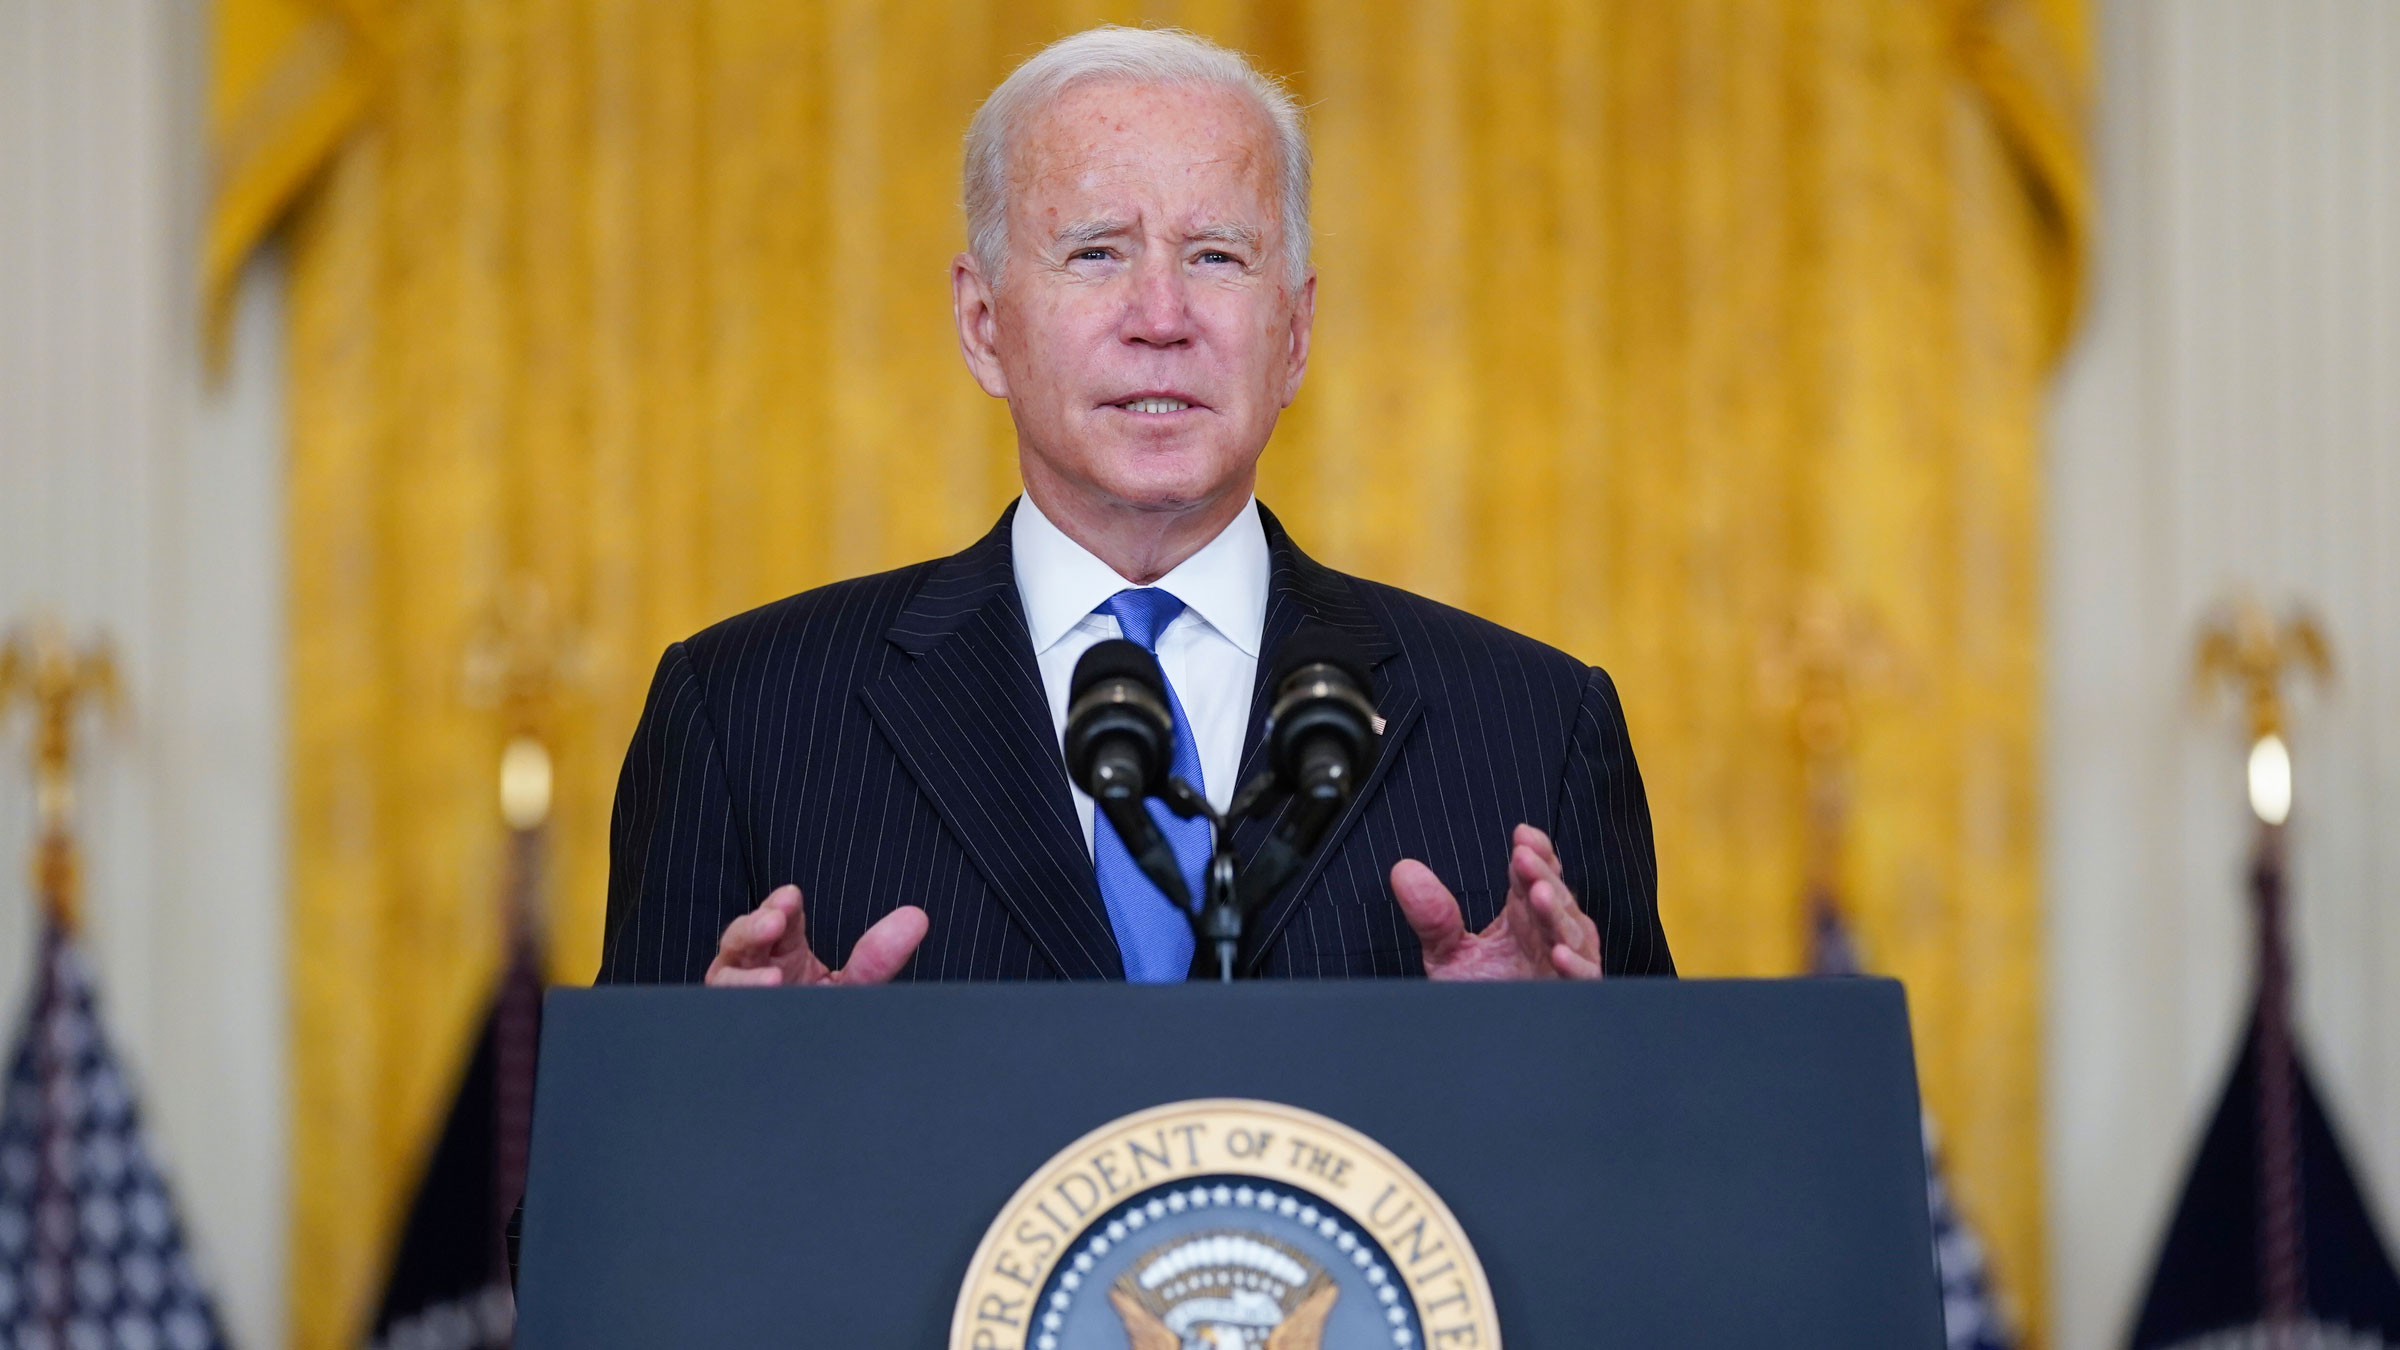 President Joe Biden delivers remarks in the East Room of the White House on Wednesday.